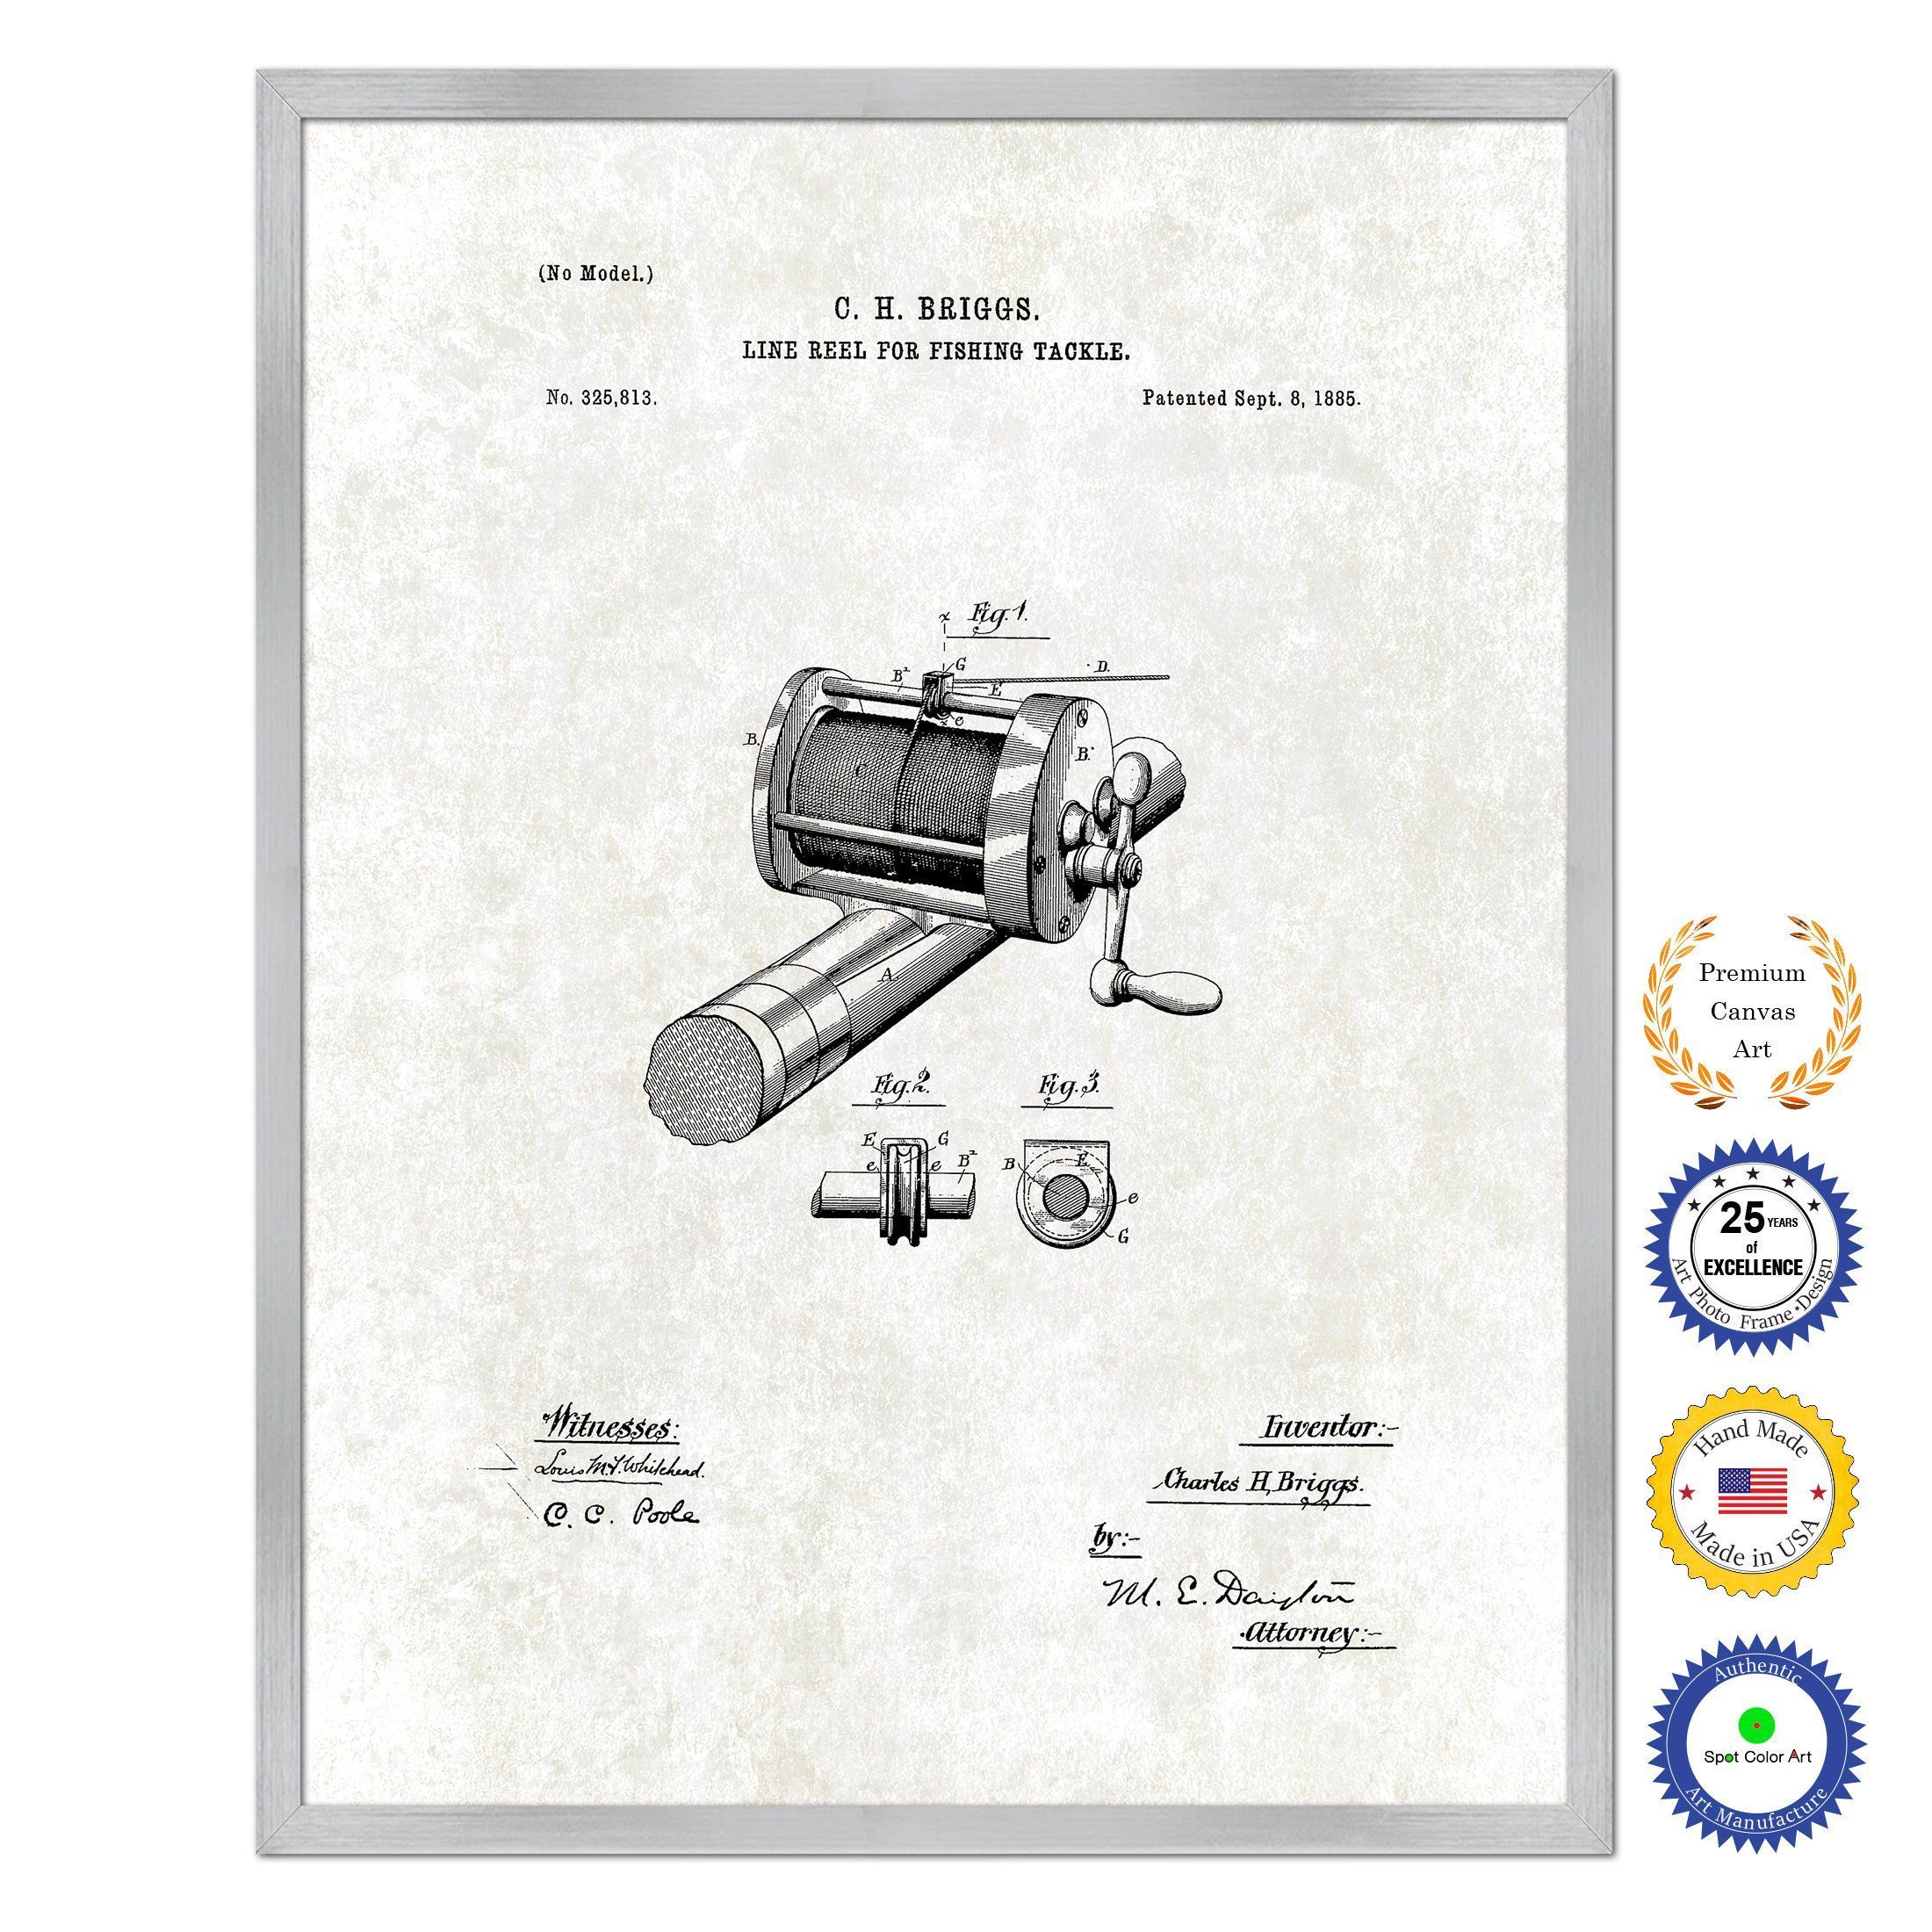 1885 Fishing Line Reel for Fishing Tackle Antique Patent Artwork ...